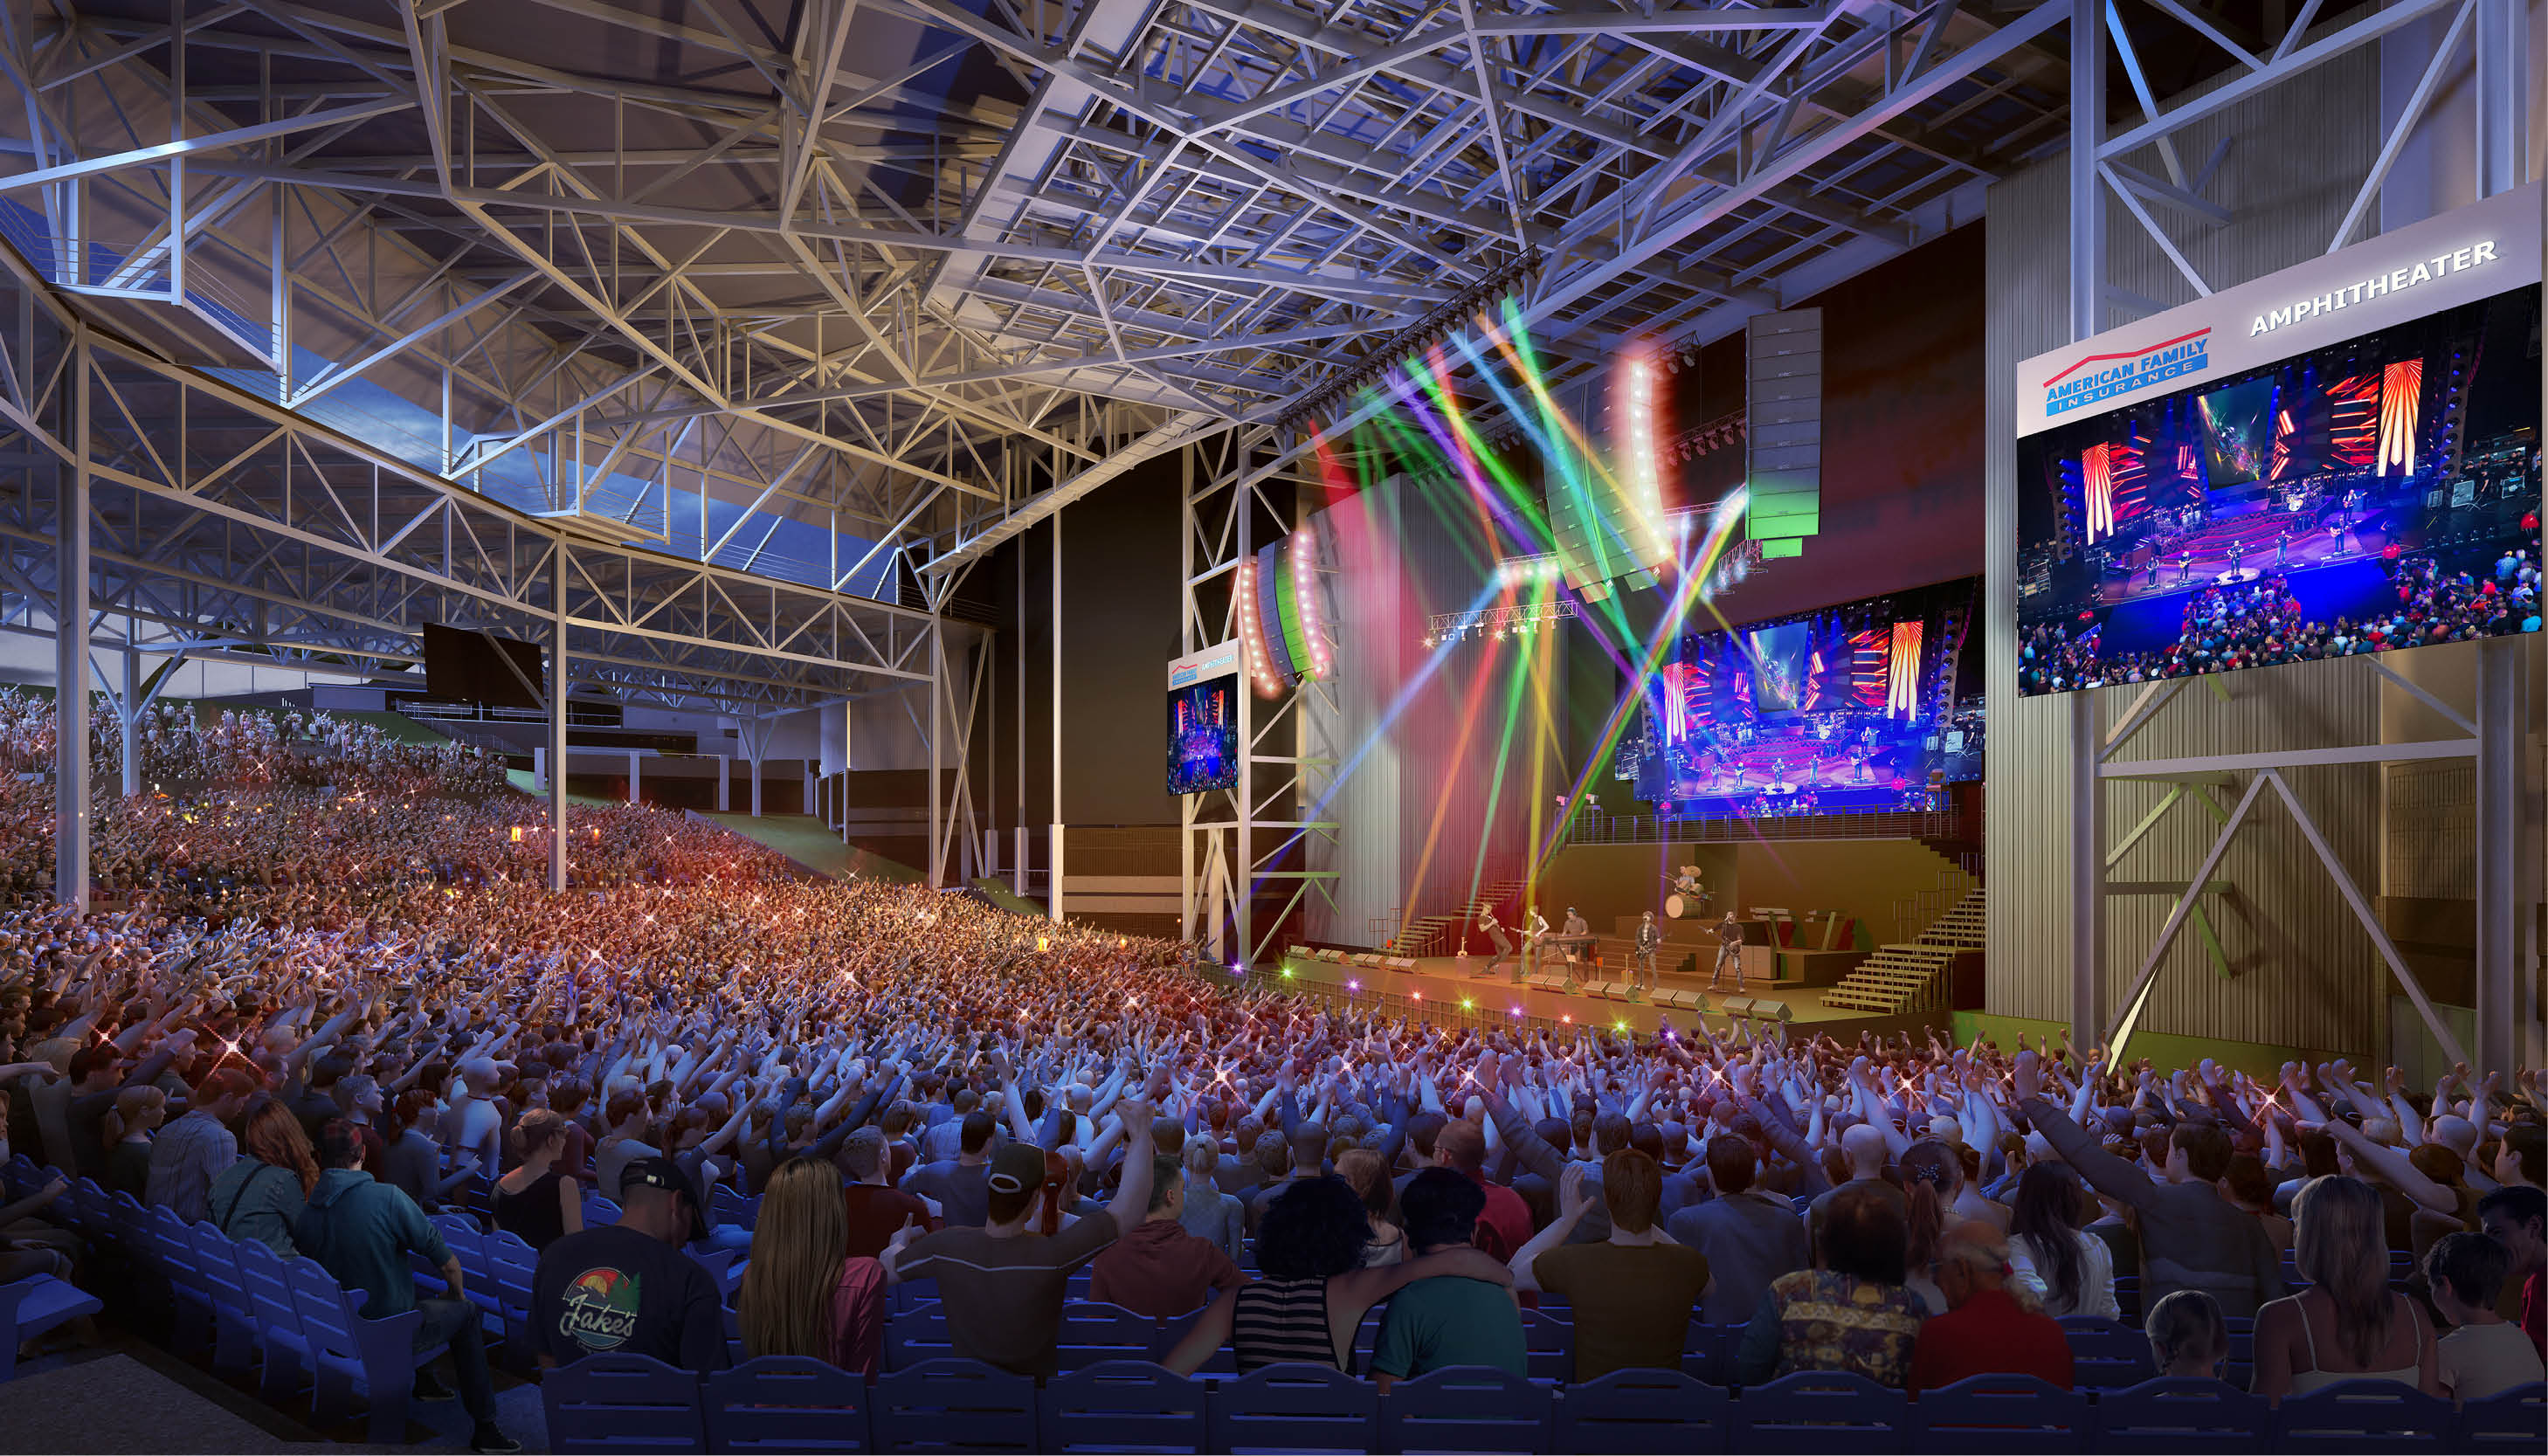 Progress report: Phase two of the AmFam Amphitheater Image